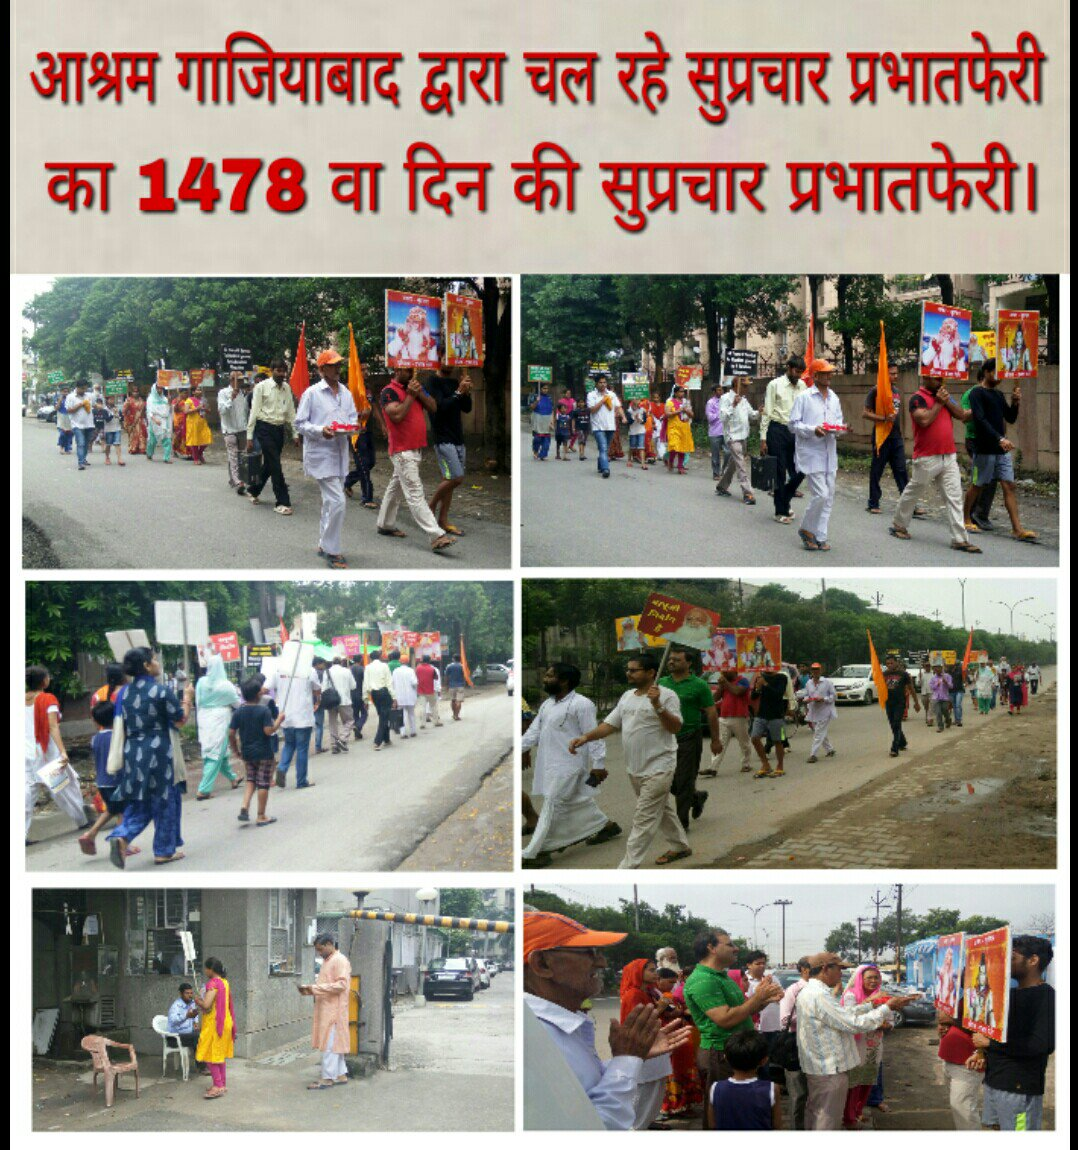 1478days of Uninterrupted #PrabhatPheri in #Ghaziabad  giving more power2 demand of #Justice 2 #NirdoshBapuji as he is a #SaintForHumanity !<br>http://pic.twitter.com/pcdZgEgLmz